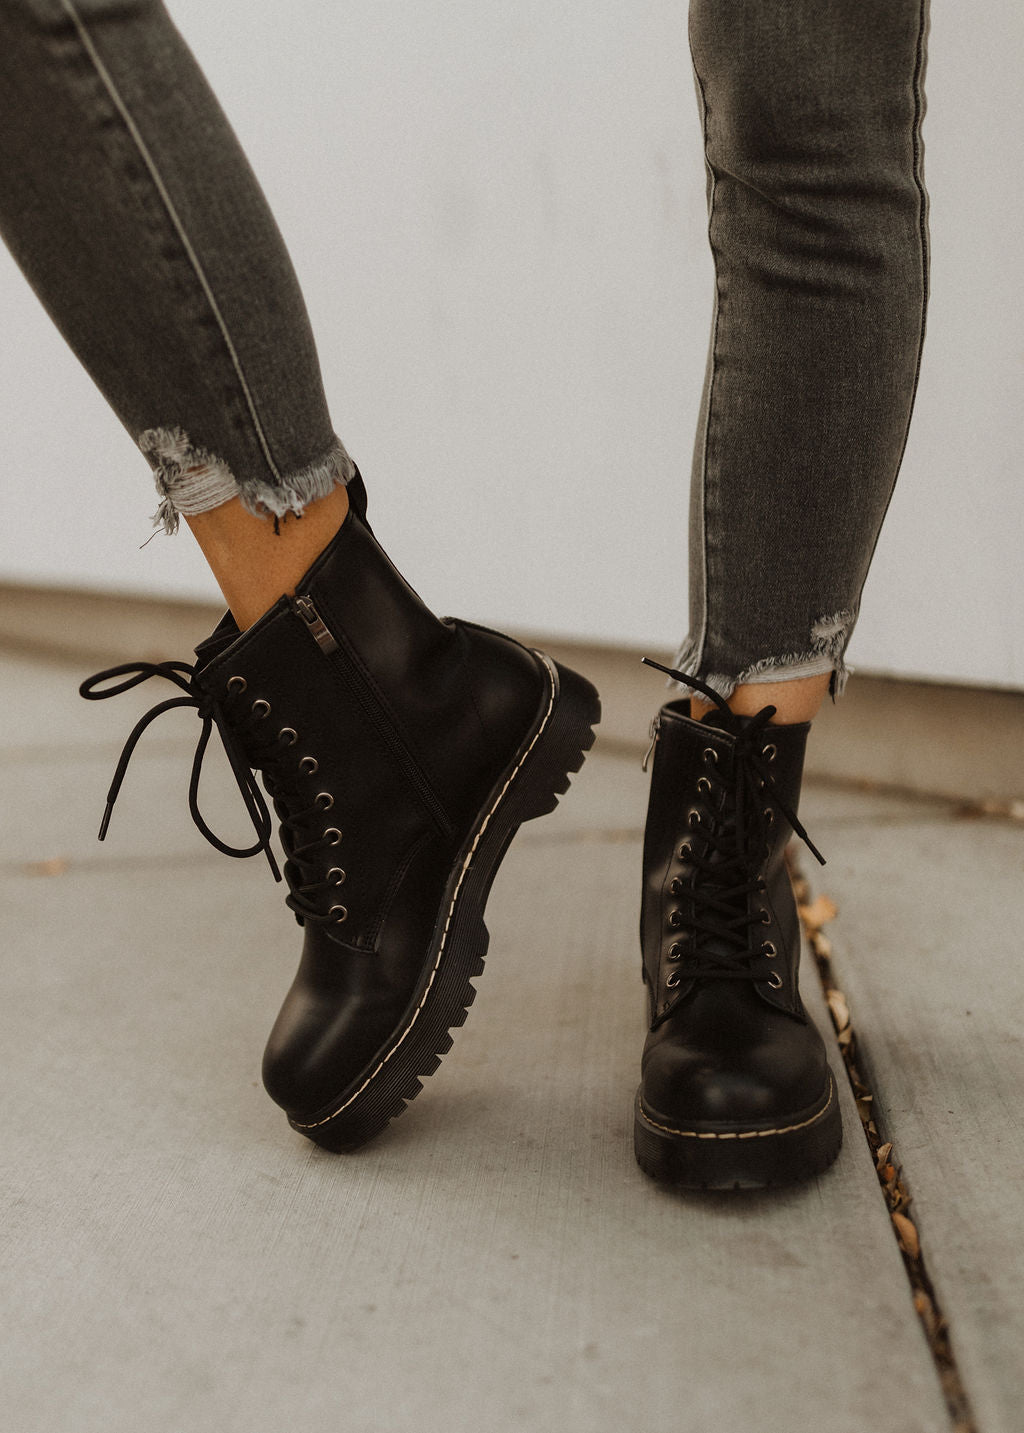 THE CONQUEST COMBAT BOOTS IN BLACK